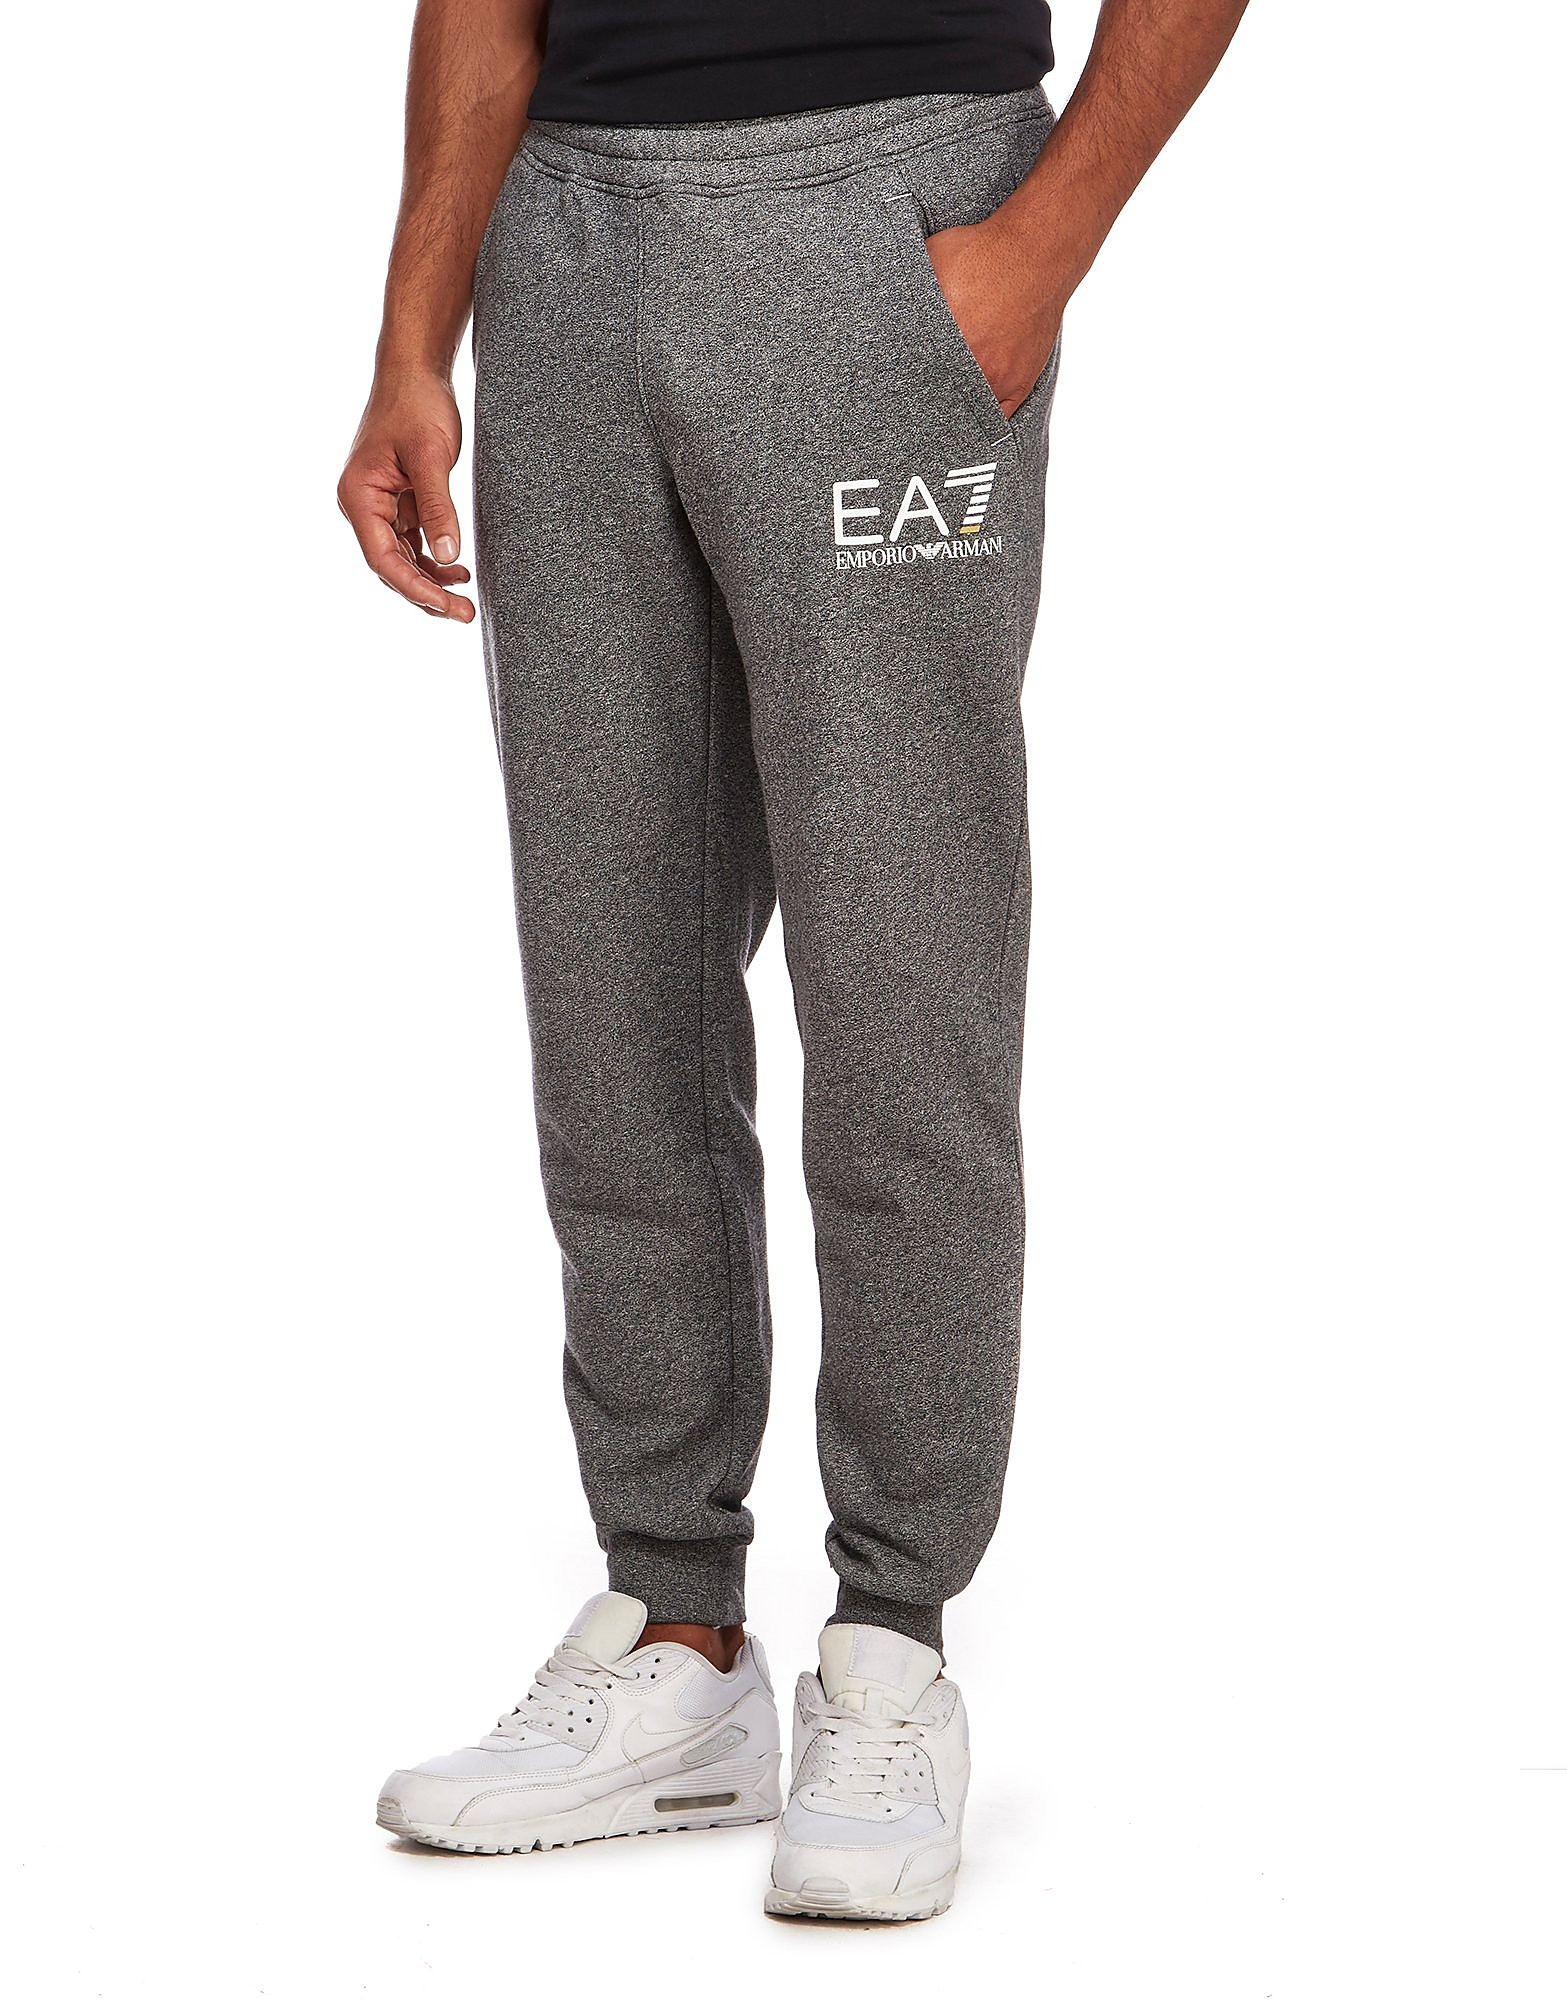 Emporio Armani EA7 Enhanced Pants